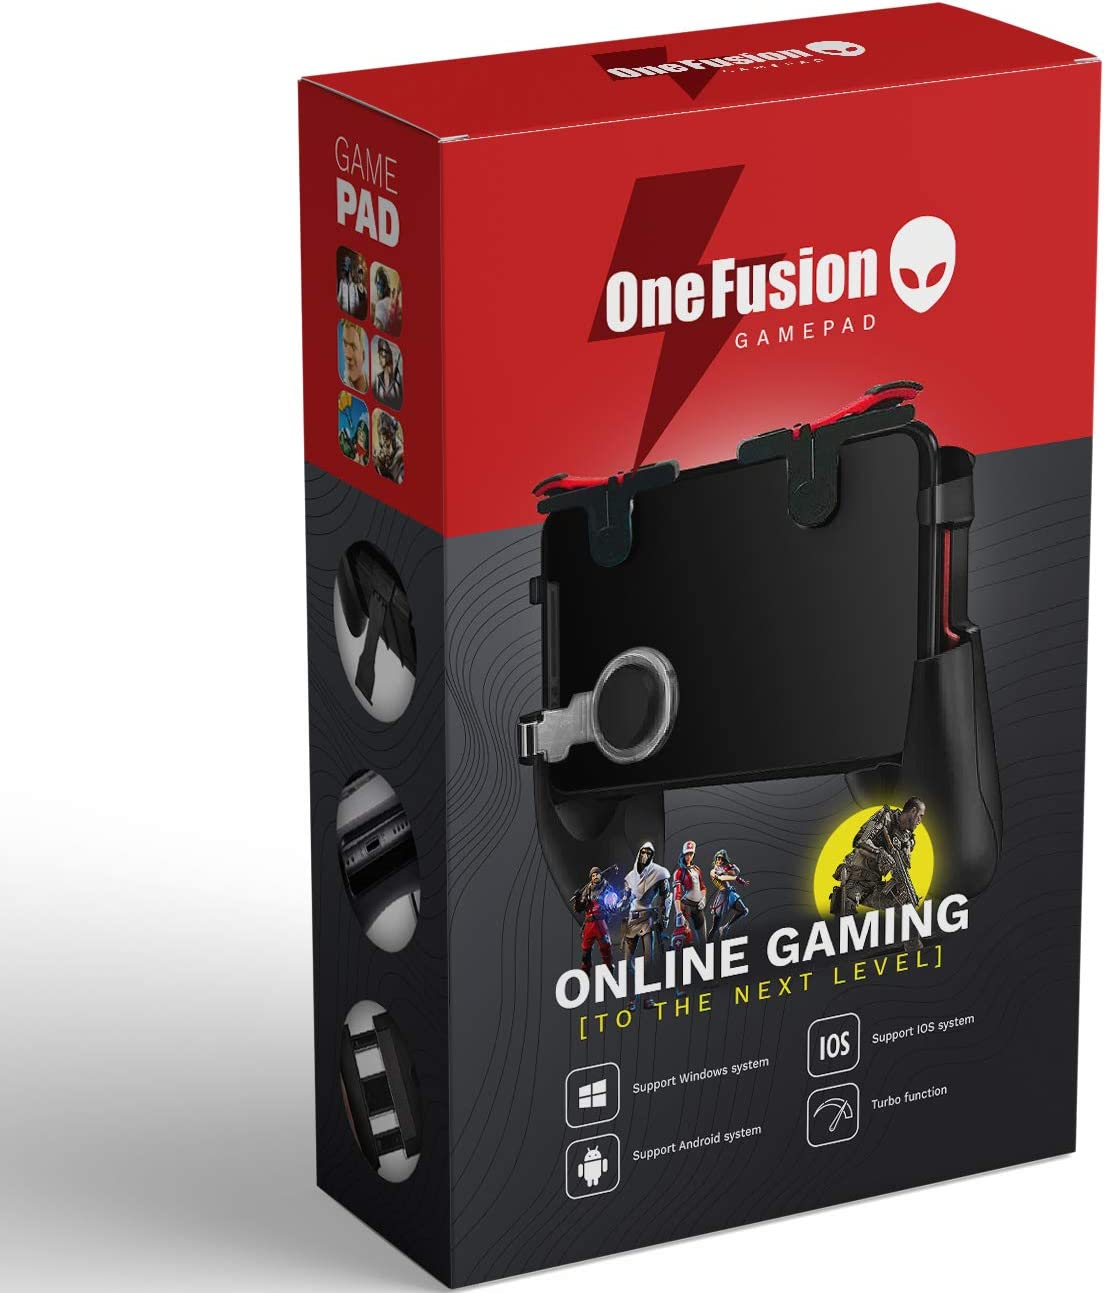 Mobile Game Controller PUBG Gamepad triggers Joystick, Highly Sensitive Shoot & Aim Buttons for Online Gaming, Gamer Assistant (iOS & Android) by OneFusion